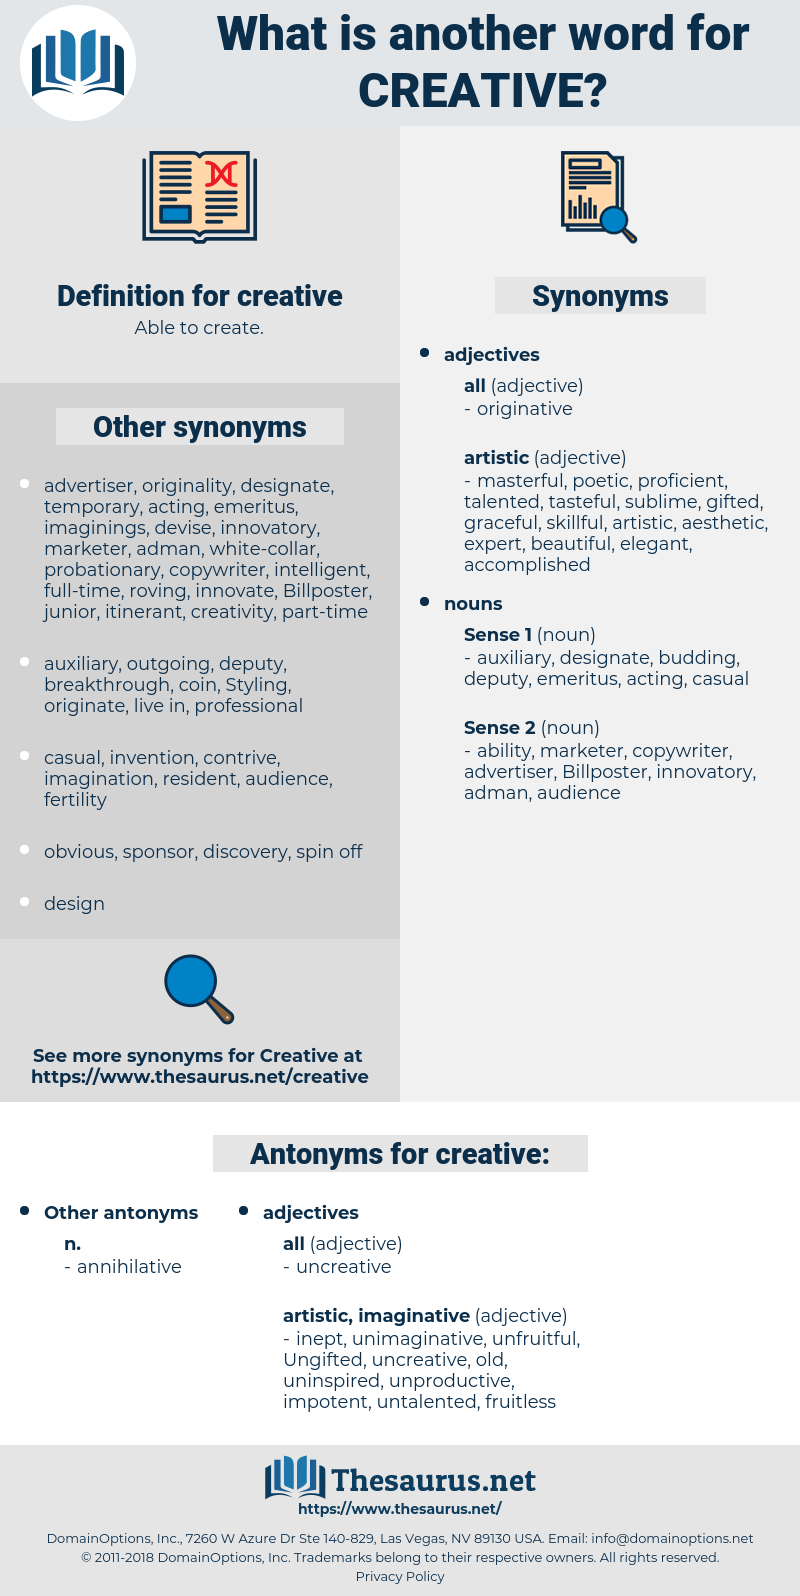 creative, synonym creative, another word for creative, words like creative, thesaurus creative